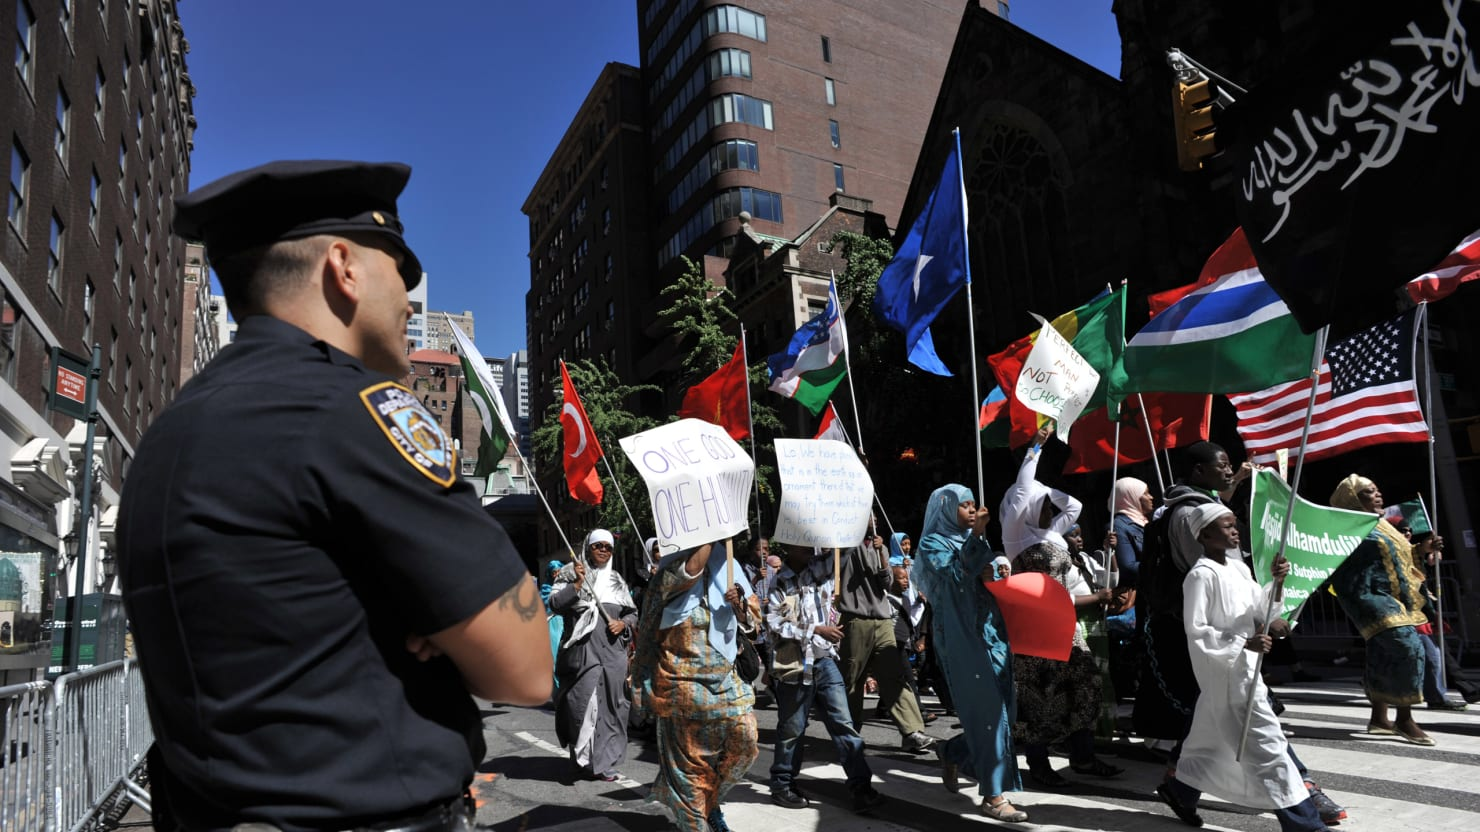 Hey NYPD, Being Muslim Isn't a Crime